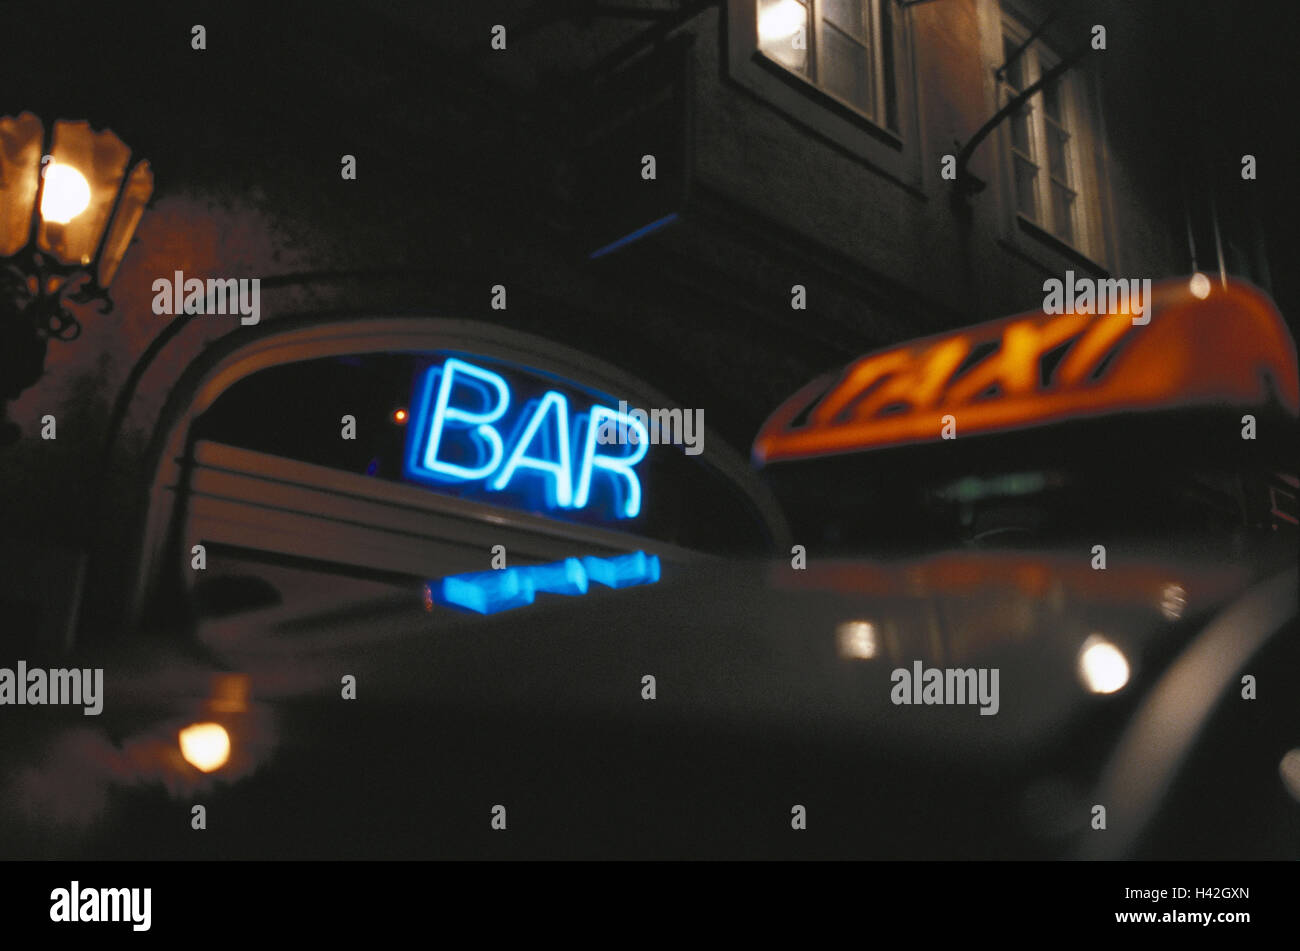 Nightclub neon lights bar roadside taxi wait detail bar nightclub neon lights bar roadside taxi wait detail bar restaurant wait outside parking lot car passenger car vehicle pick up icon mozeypictures Gallery